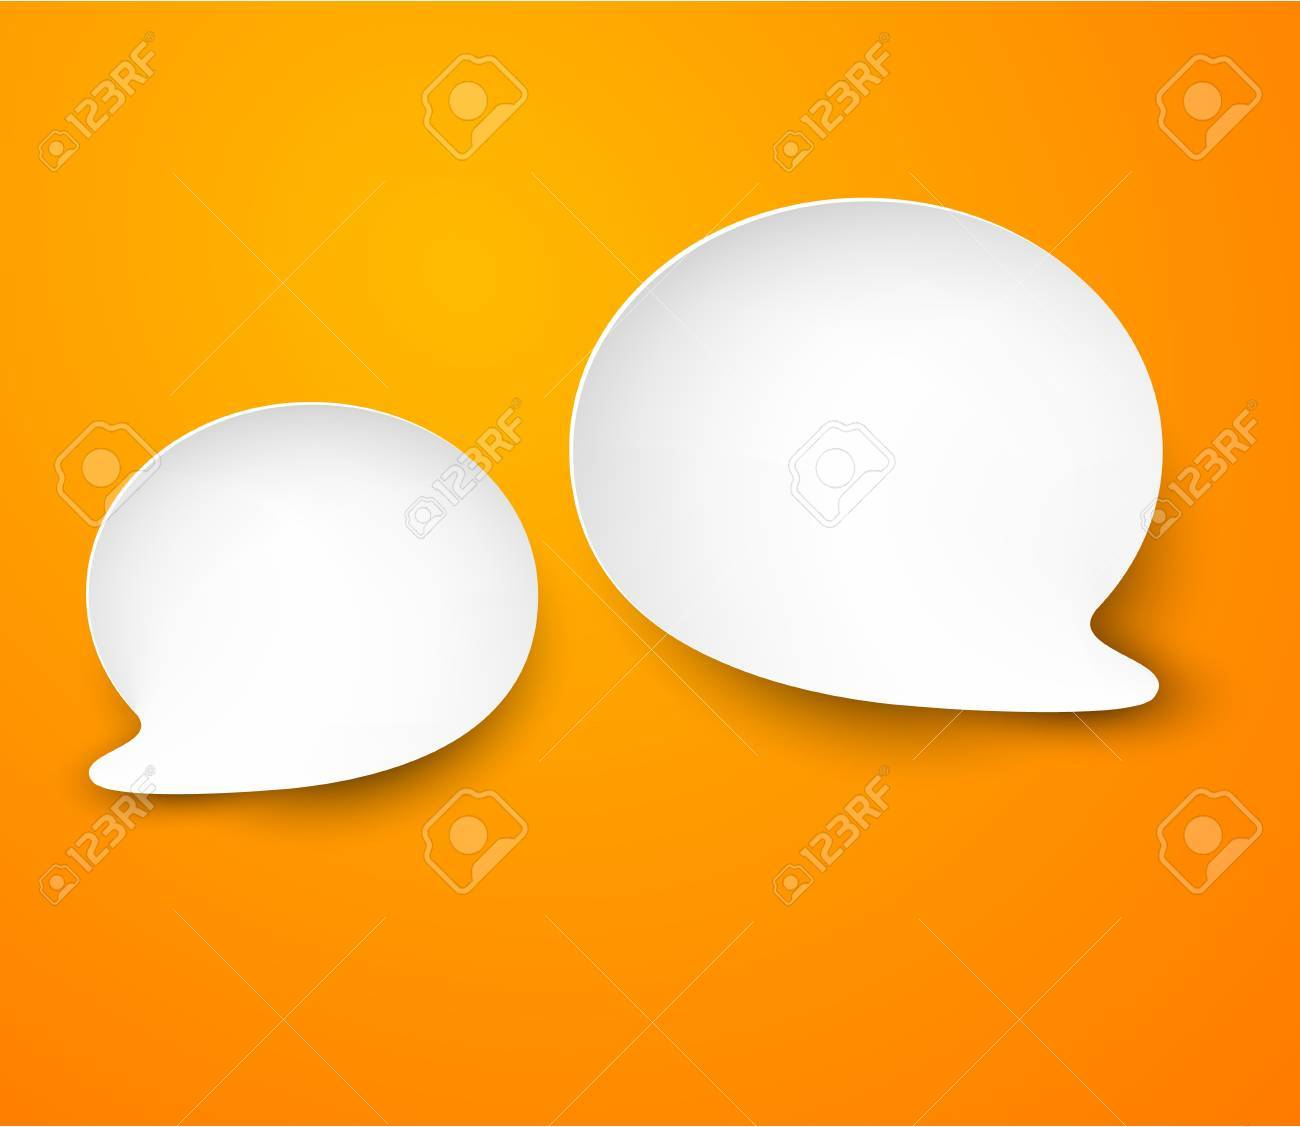 Vector abstract illustration of white paper speech bubbles on orange background Stock Vector - 17602345